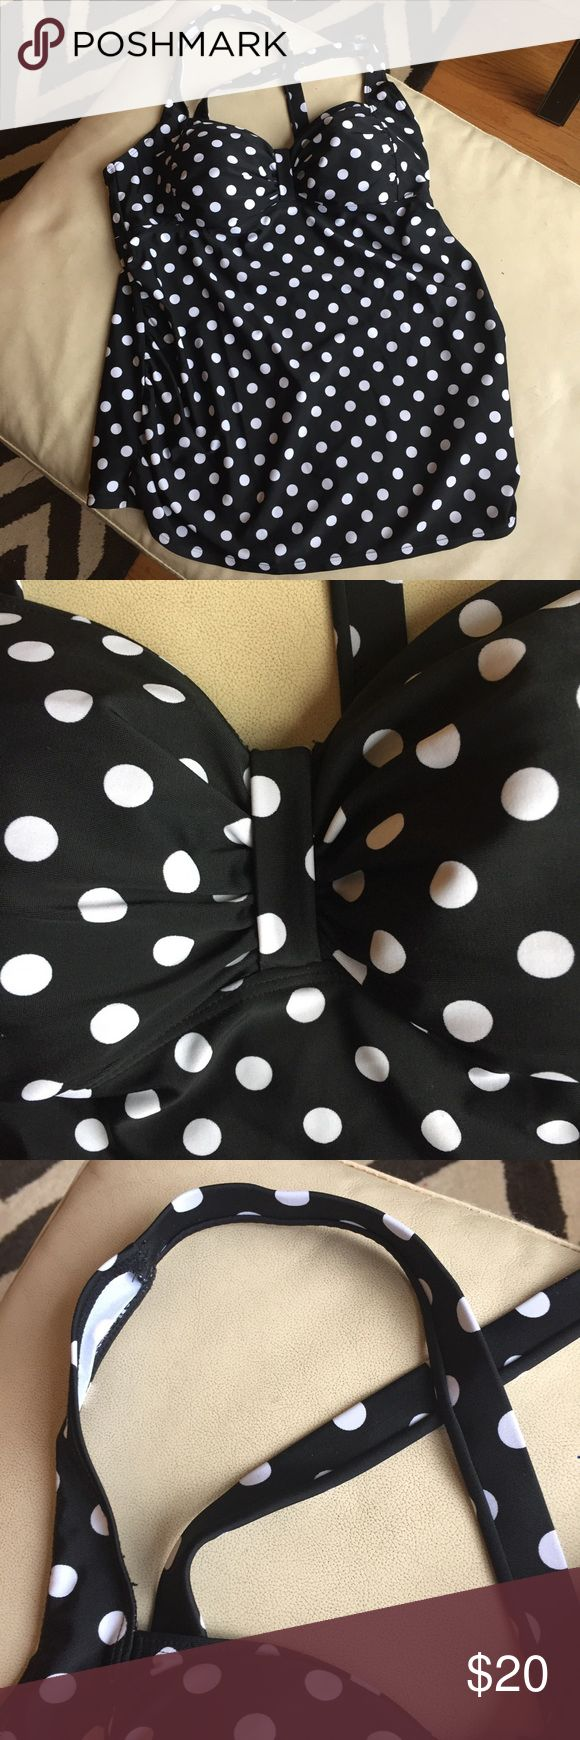 Cute Motherhood Polka Dot Tankini Top Swimwear SzM Excellent used condition. Super cute retro style tankini swim top to show off your baby bump this summer at the pool/beach! From Motherhood Maternity. Black and white polka dots.🌞🌊🏊🏻♀️ Motherhood Maternity Swim